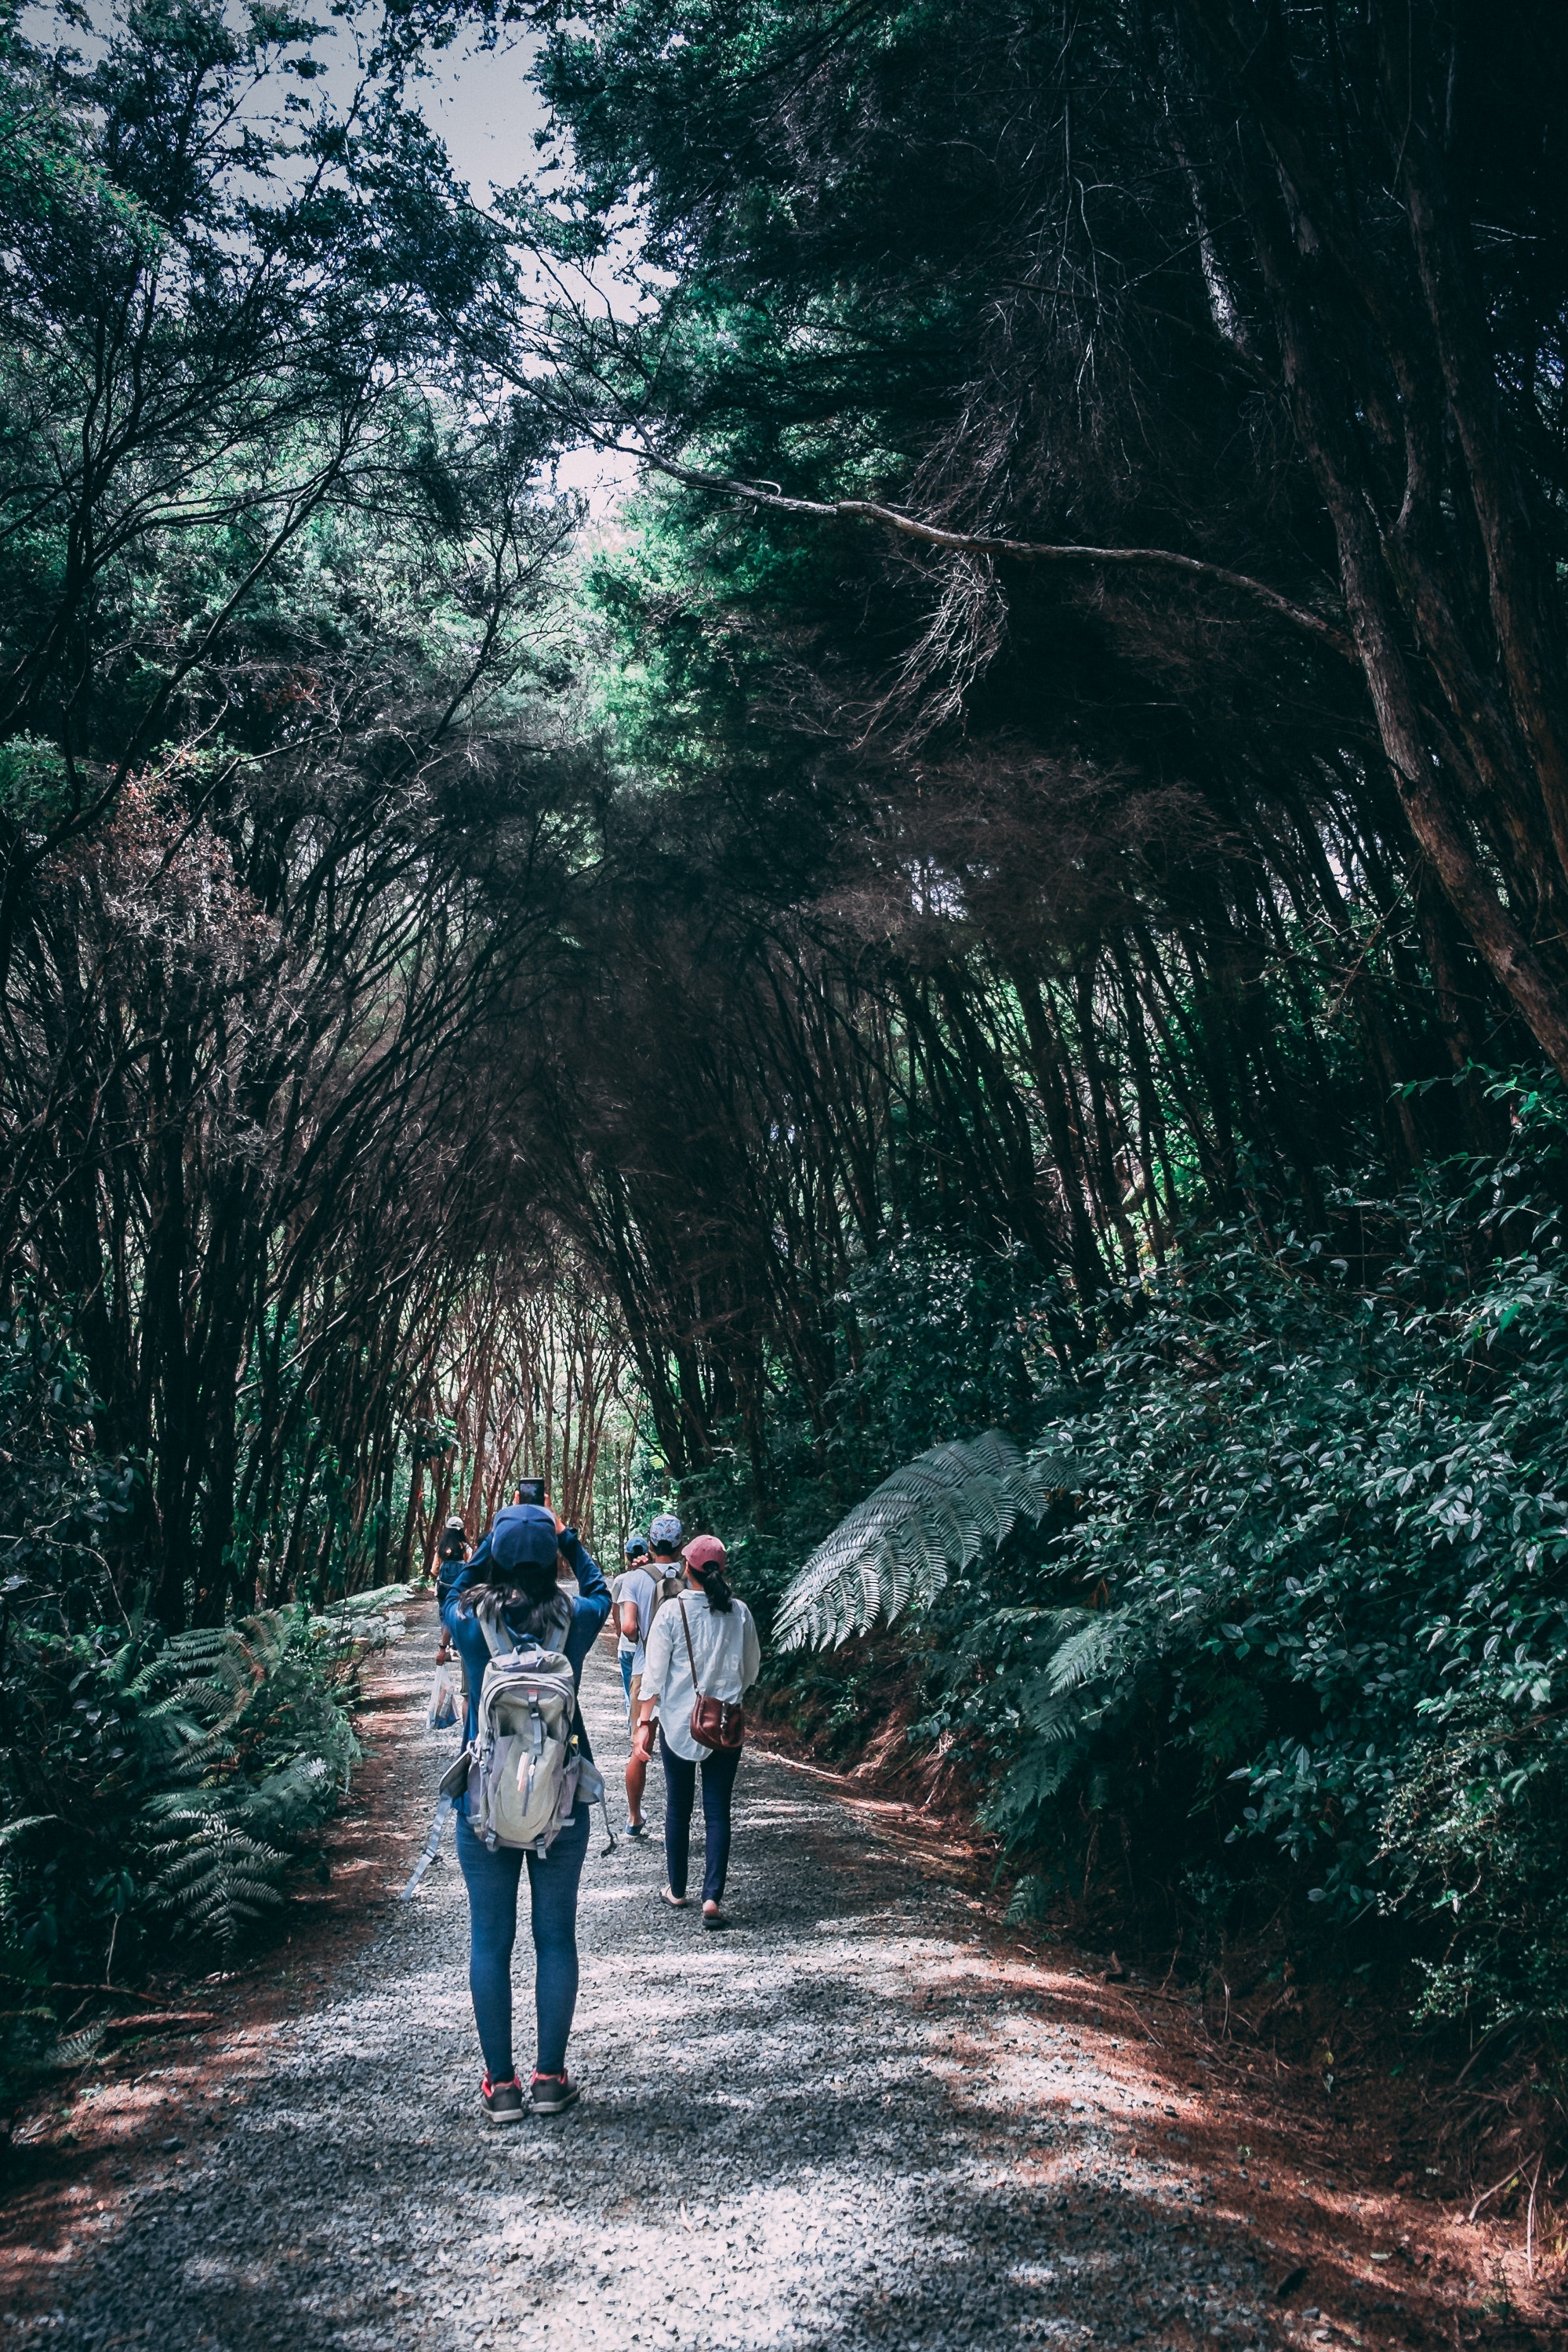 Group of people walking in forest photo